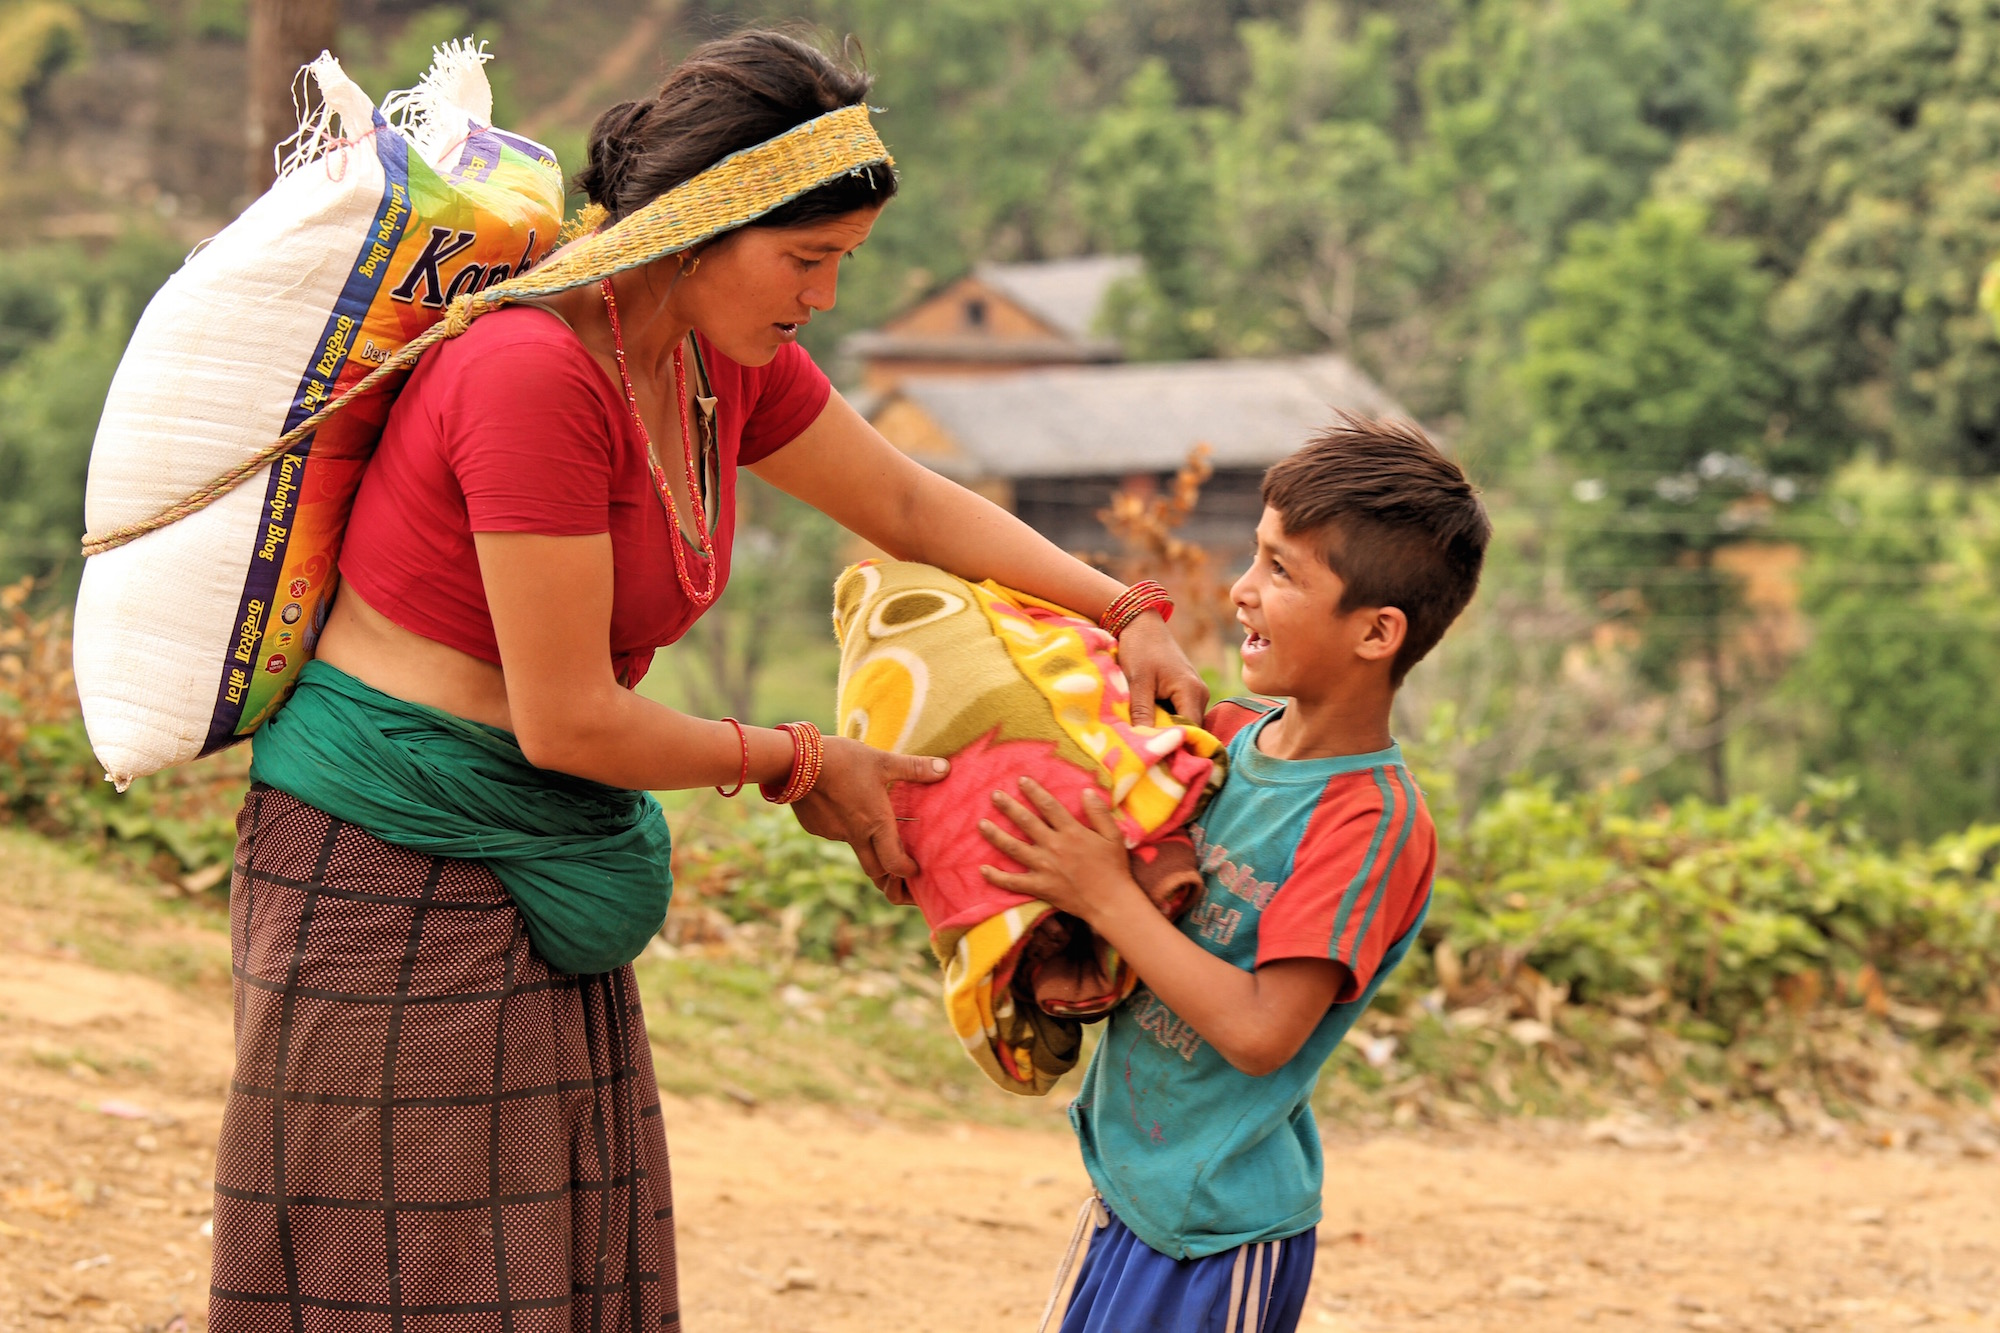 A displaced mother walked for hours with her son to get food relief and a blanket in the village of Kharanitar in Nepal's Nuwakot district. Supplies are often dropped far away from remote villages